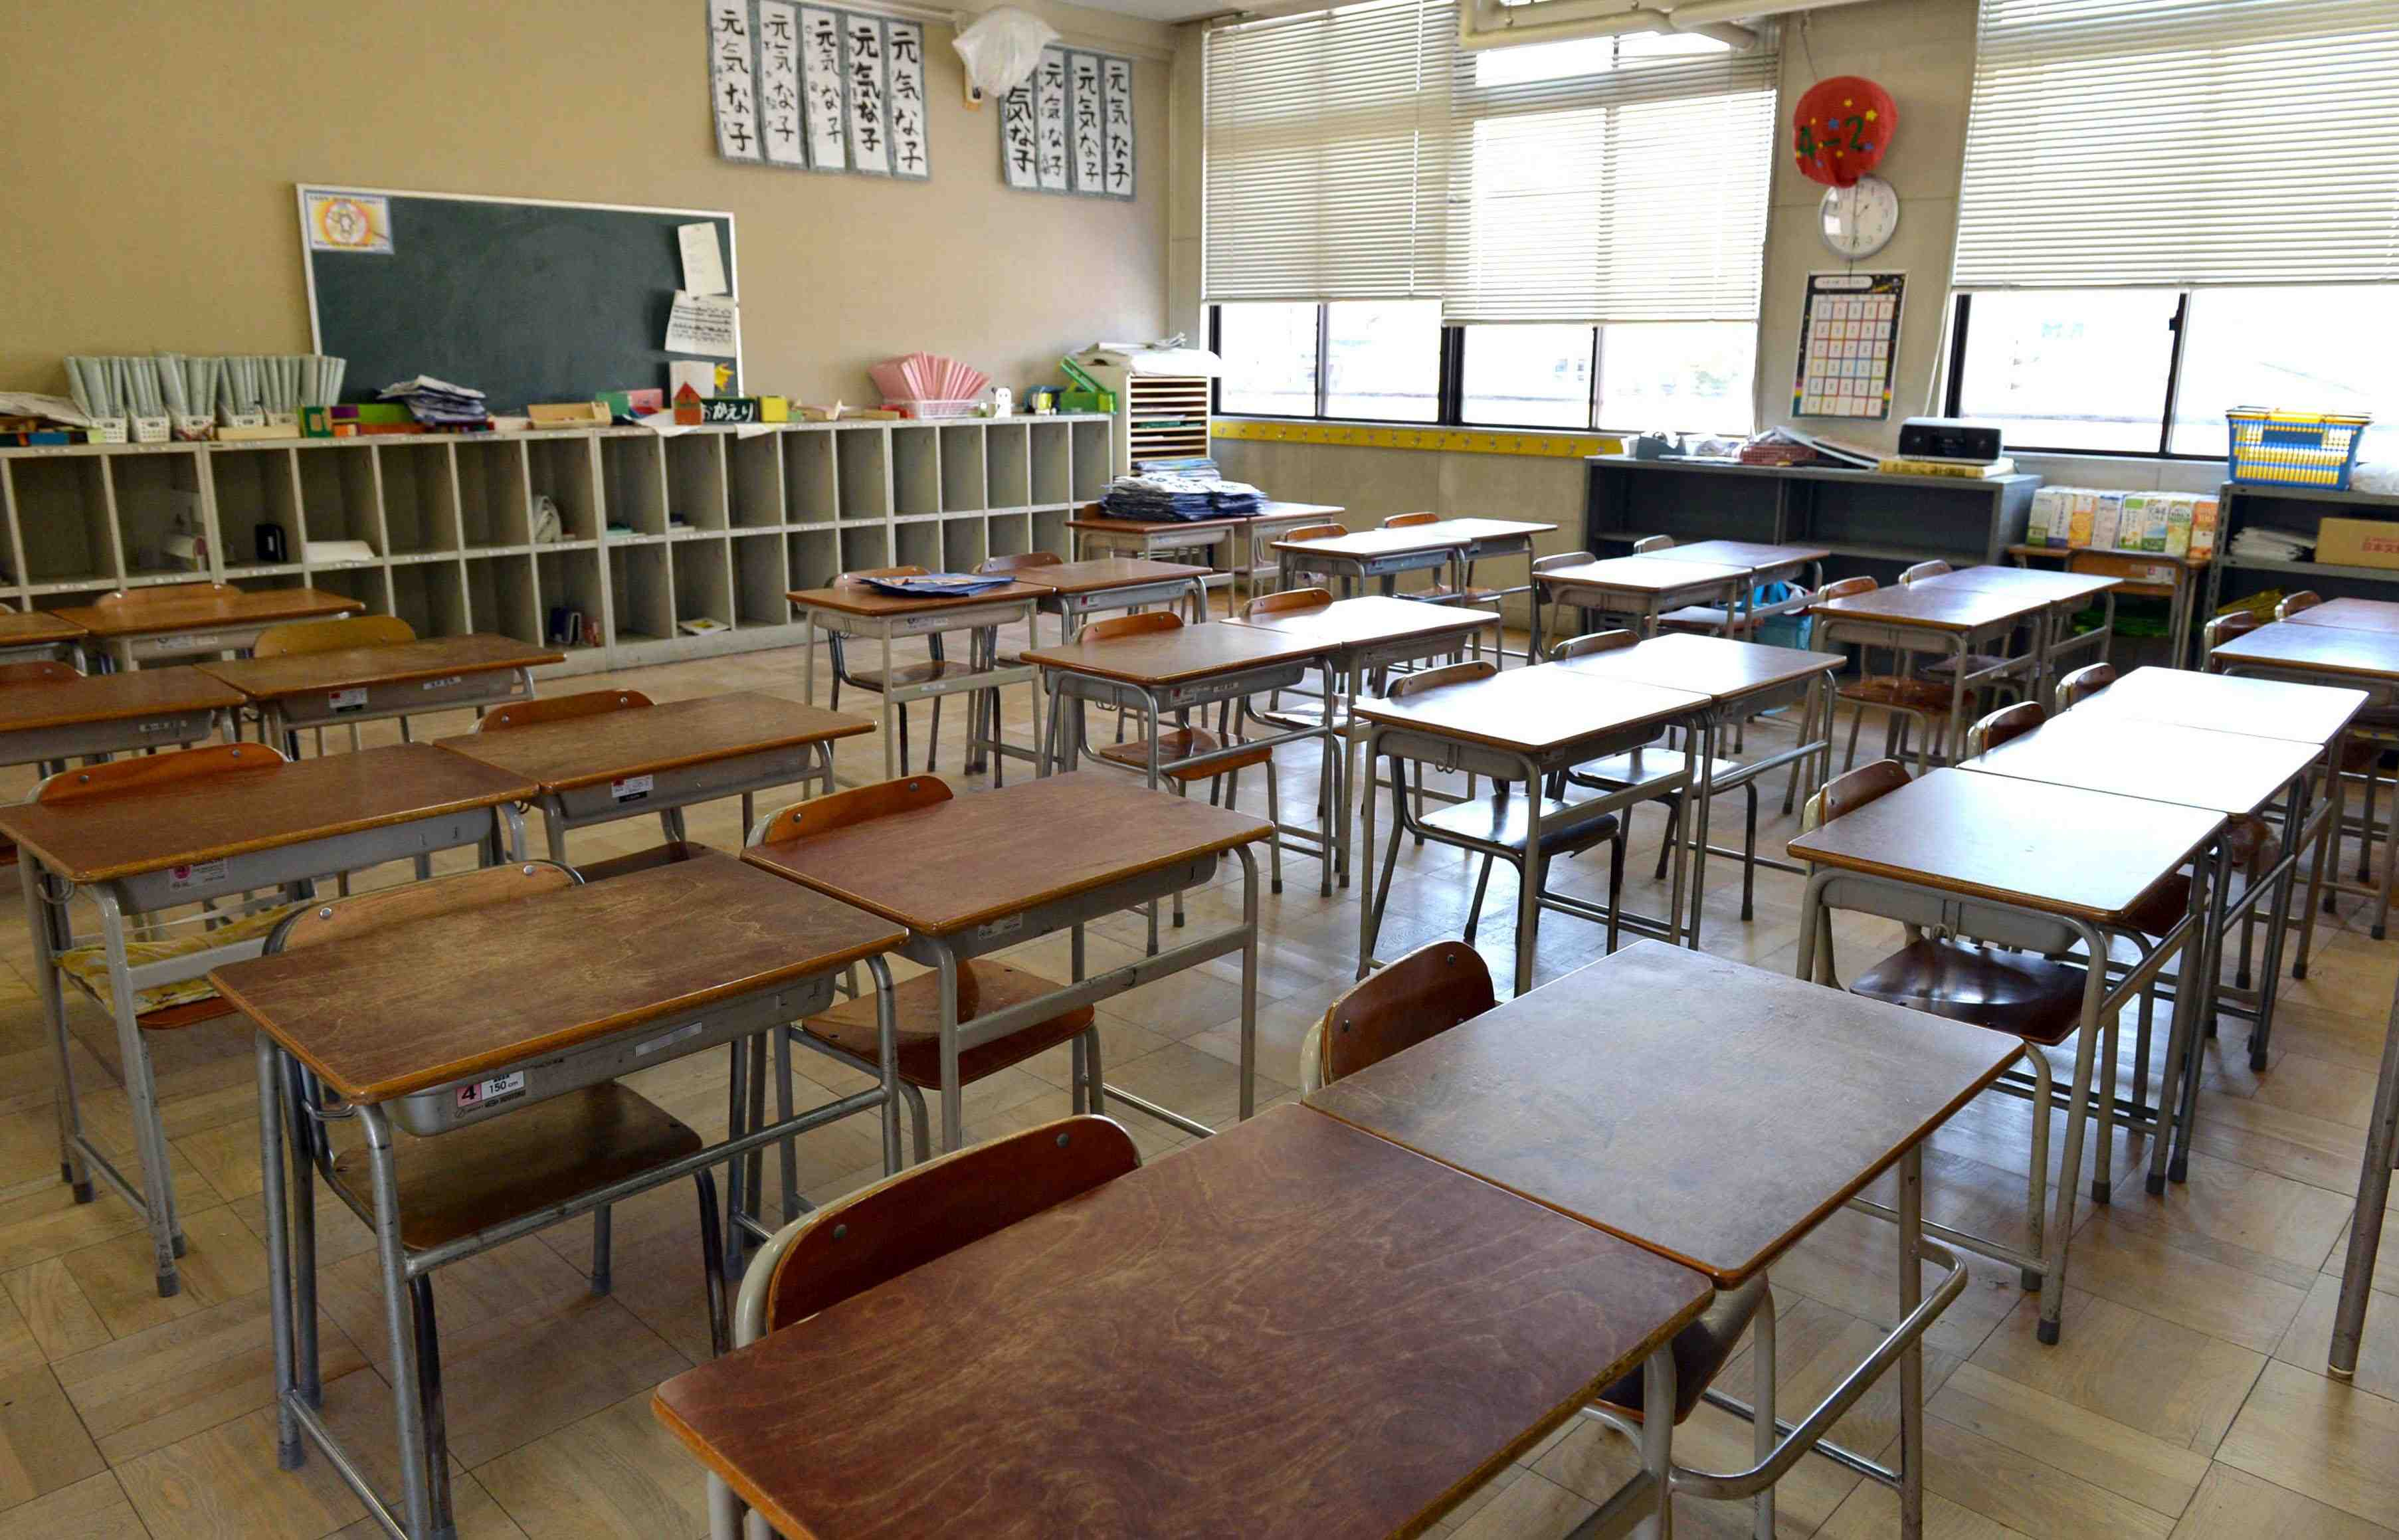 Reopening K-12 Schools during the COVID-19 Pandemic: Equity, Ethical and Policy Considerations